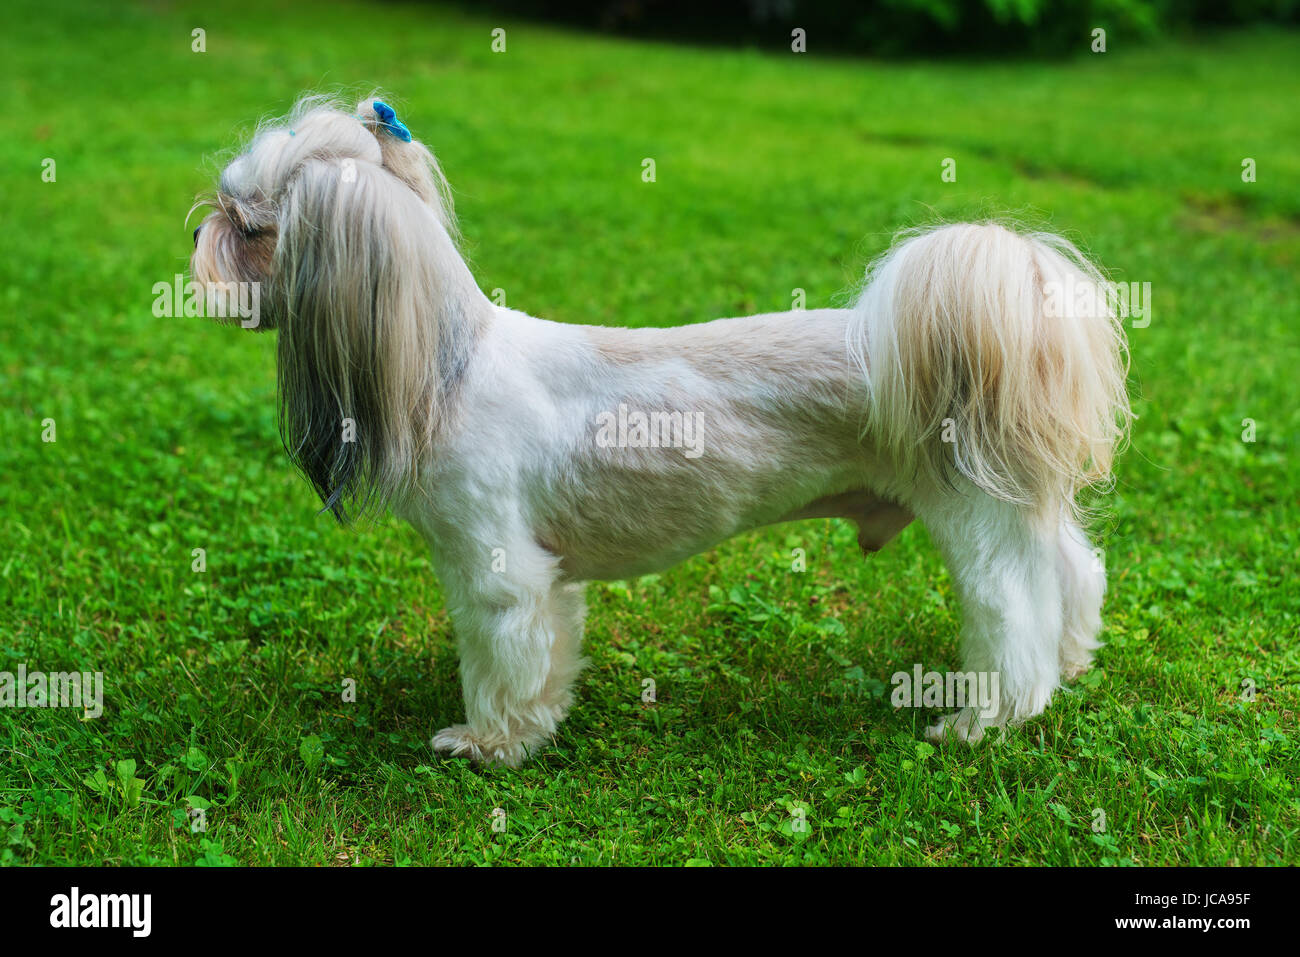 Shih Tzu Dog With Short Haircut Standing On Green Lawn Background Stock Photo Alamy